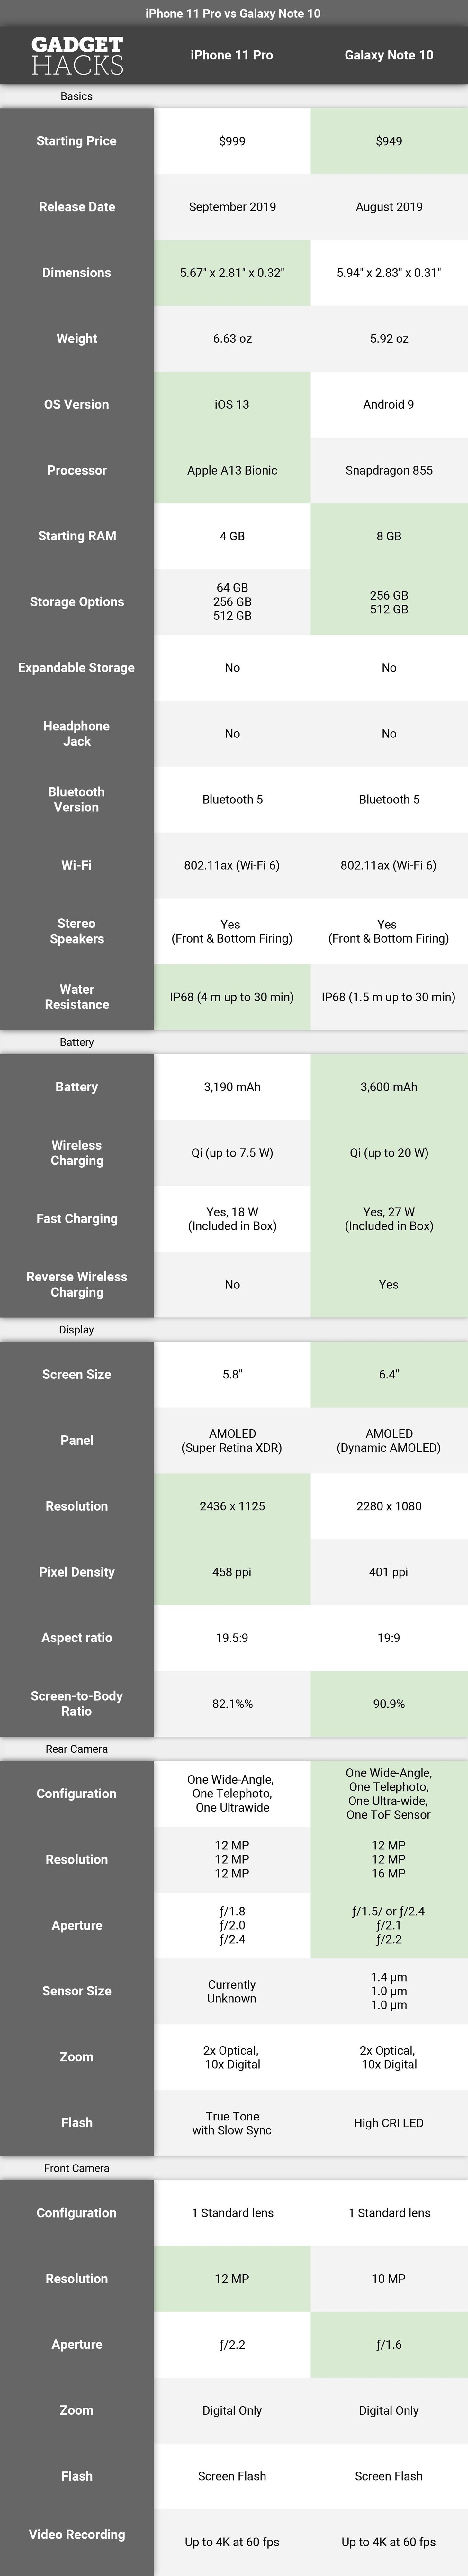 Apple vs. Samsung: iPhone 11 Pro vs. Galaxy Note 10 — Full Spec Comparison